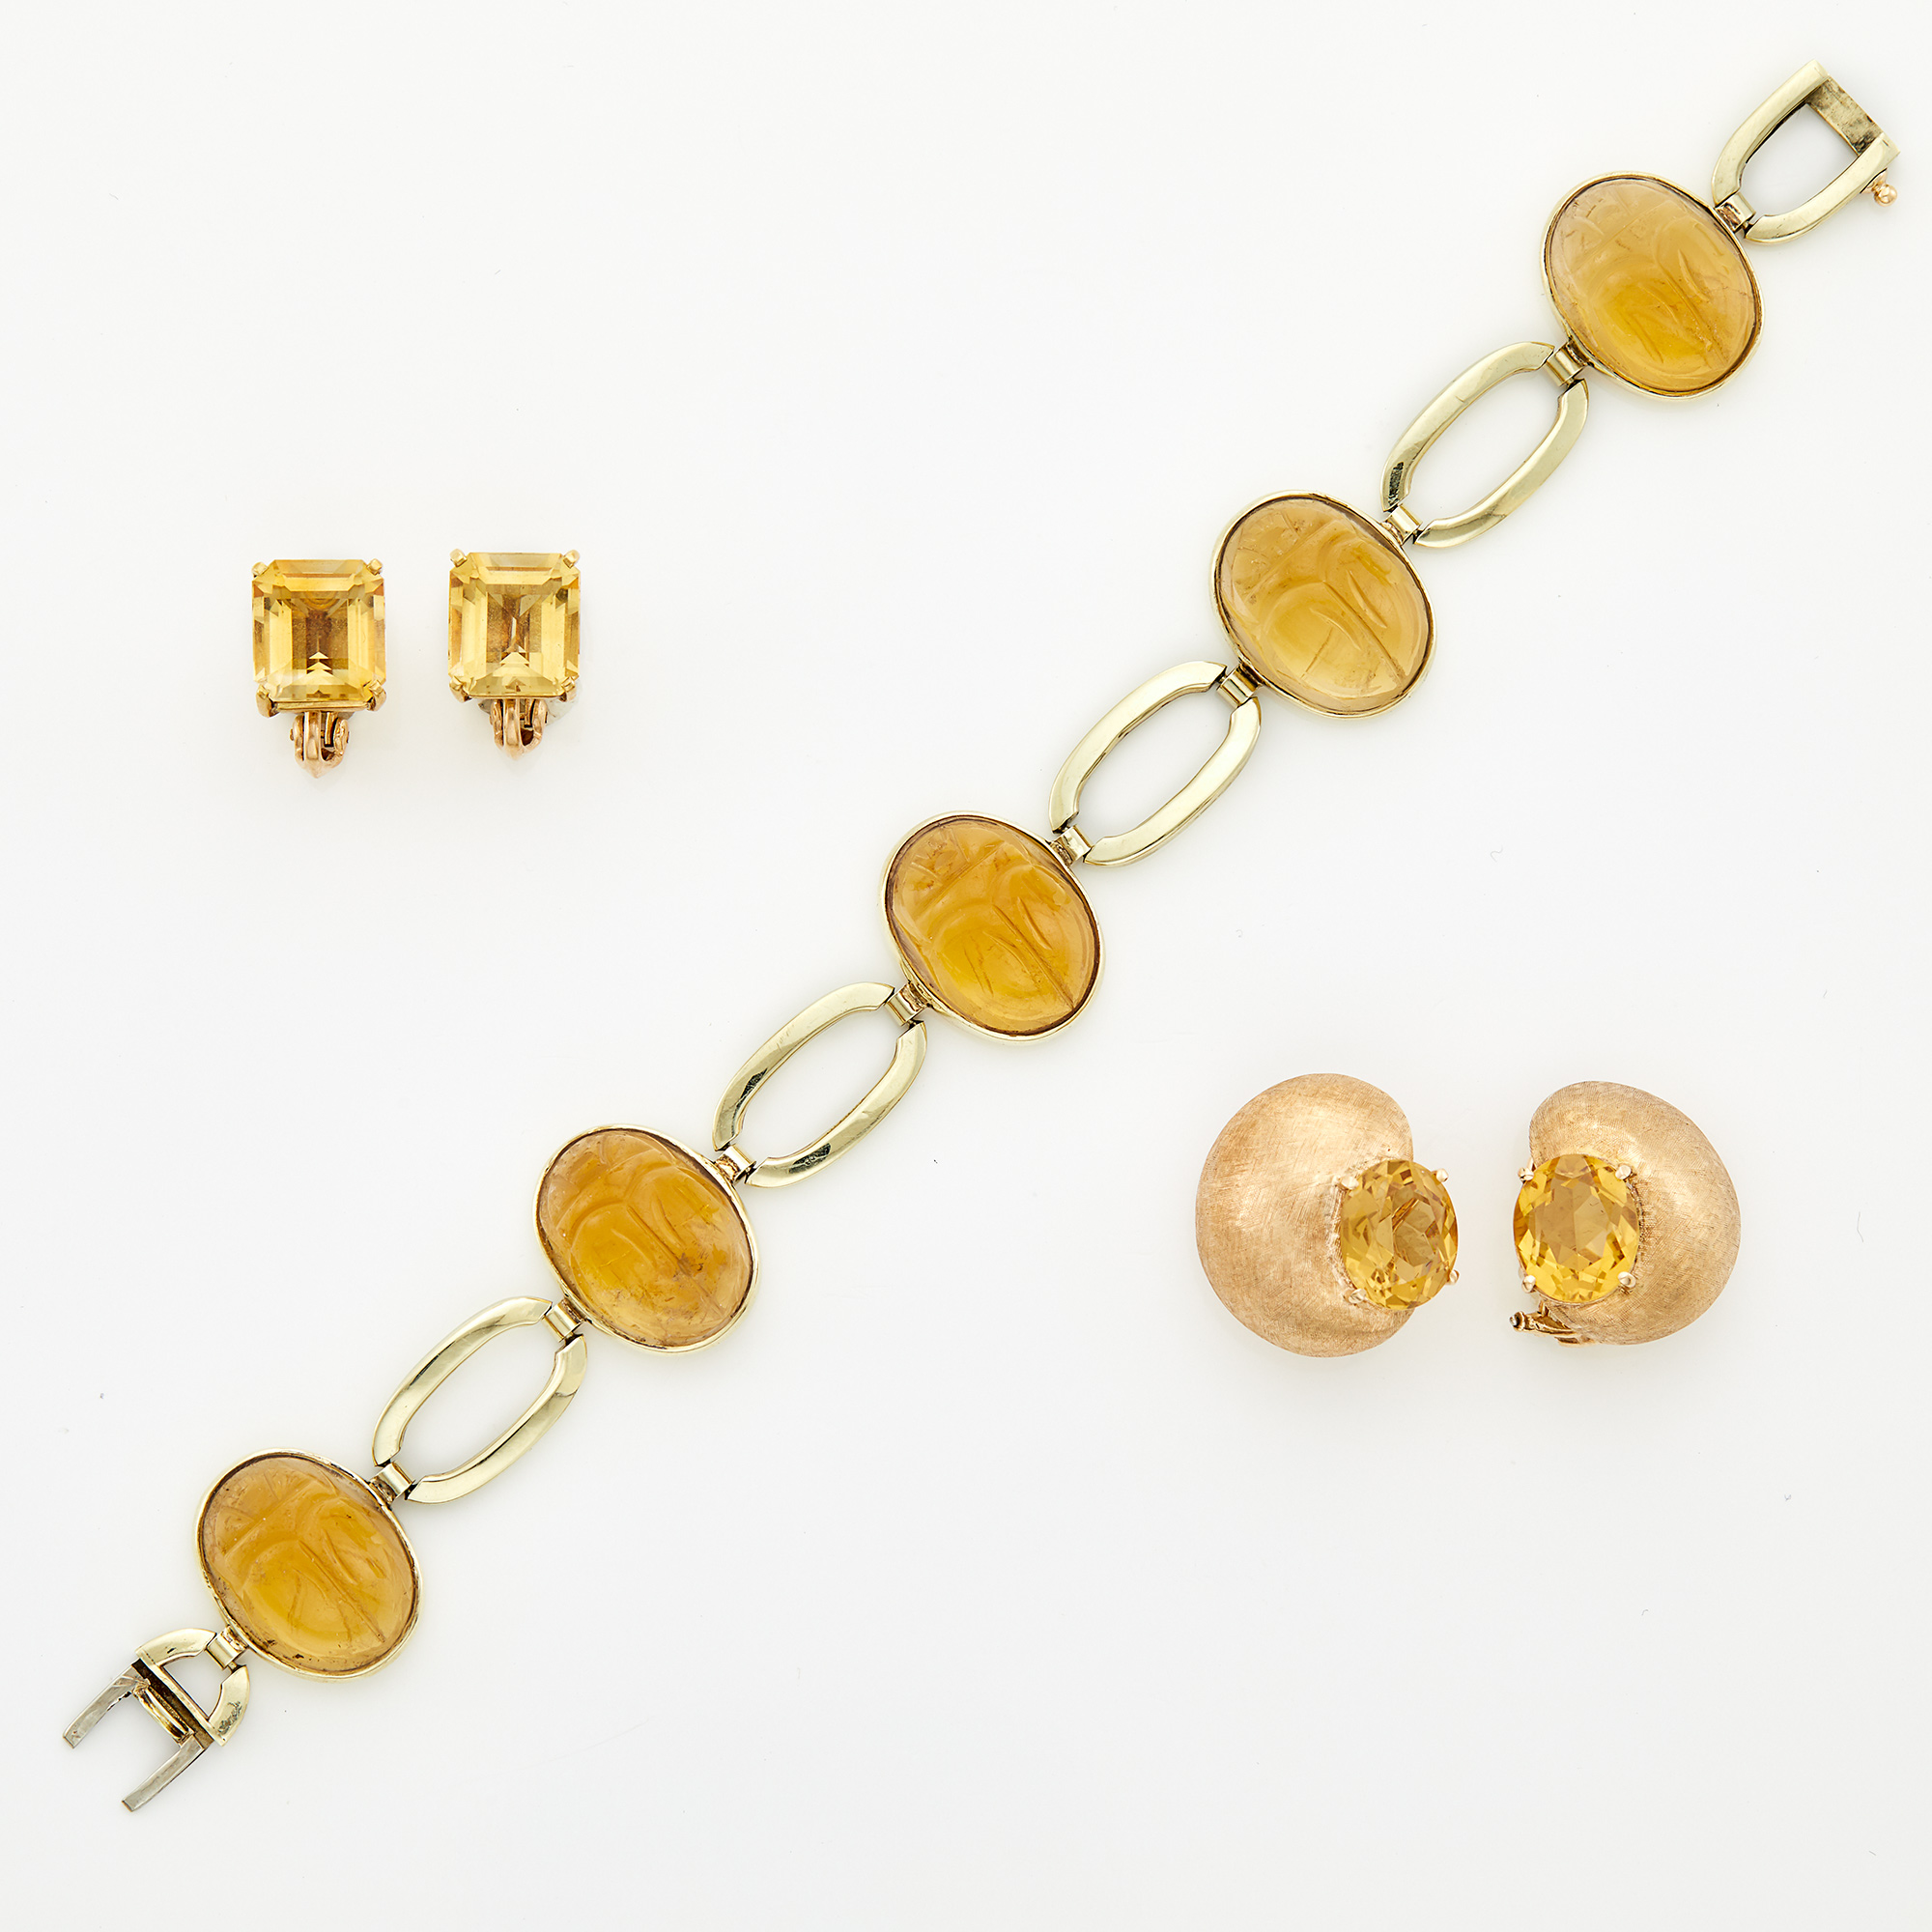 Lot image - Gold and Citrine Scarab Bracelet, Cartier, and Two Pairs of Gold and Citrine Earclips